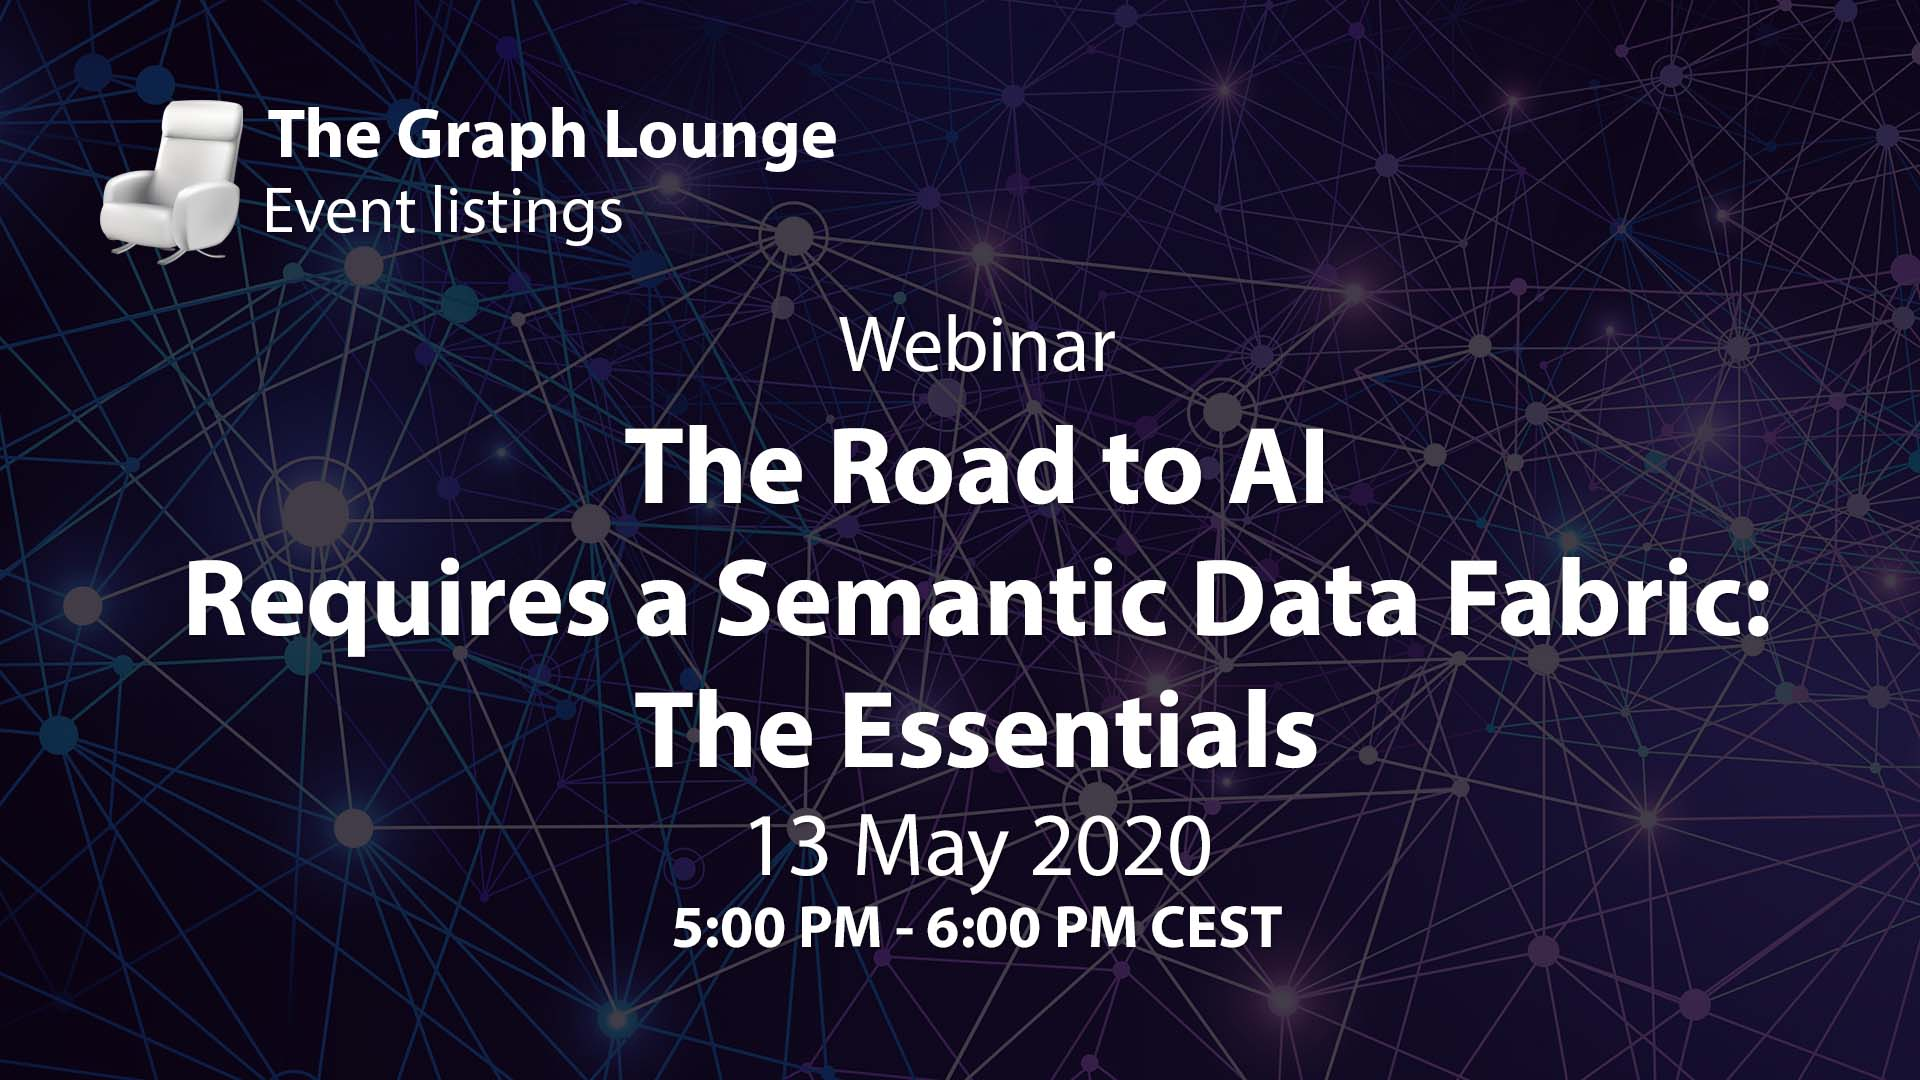 The Road to AI Requires a Semantic Data Fabric: The Essentials